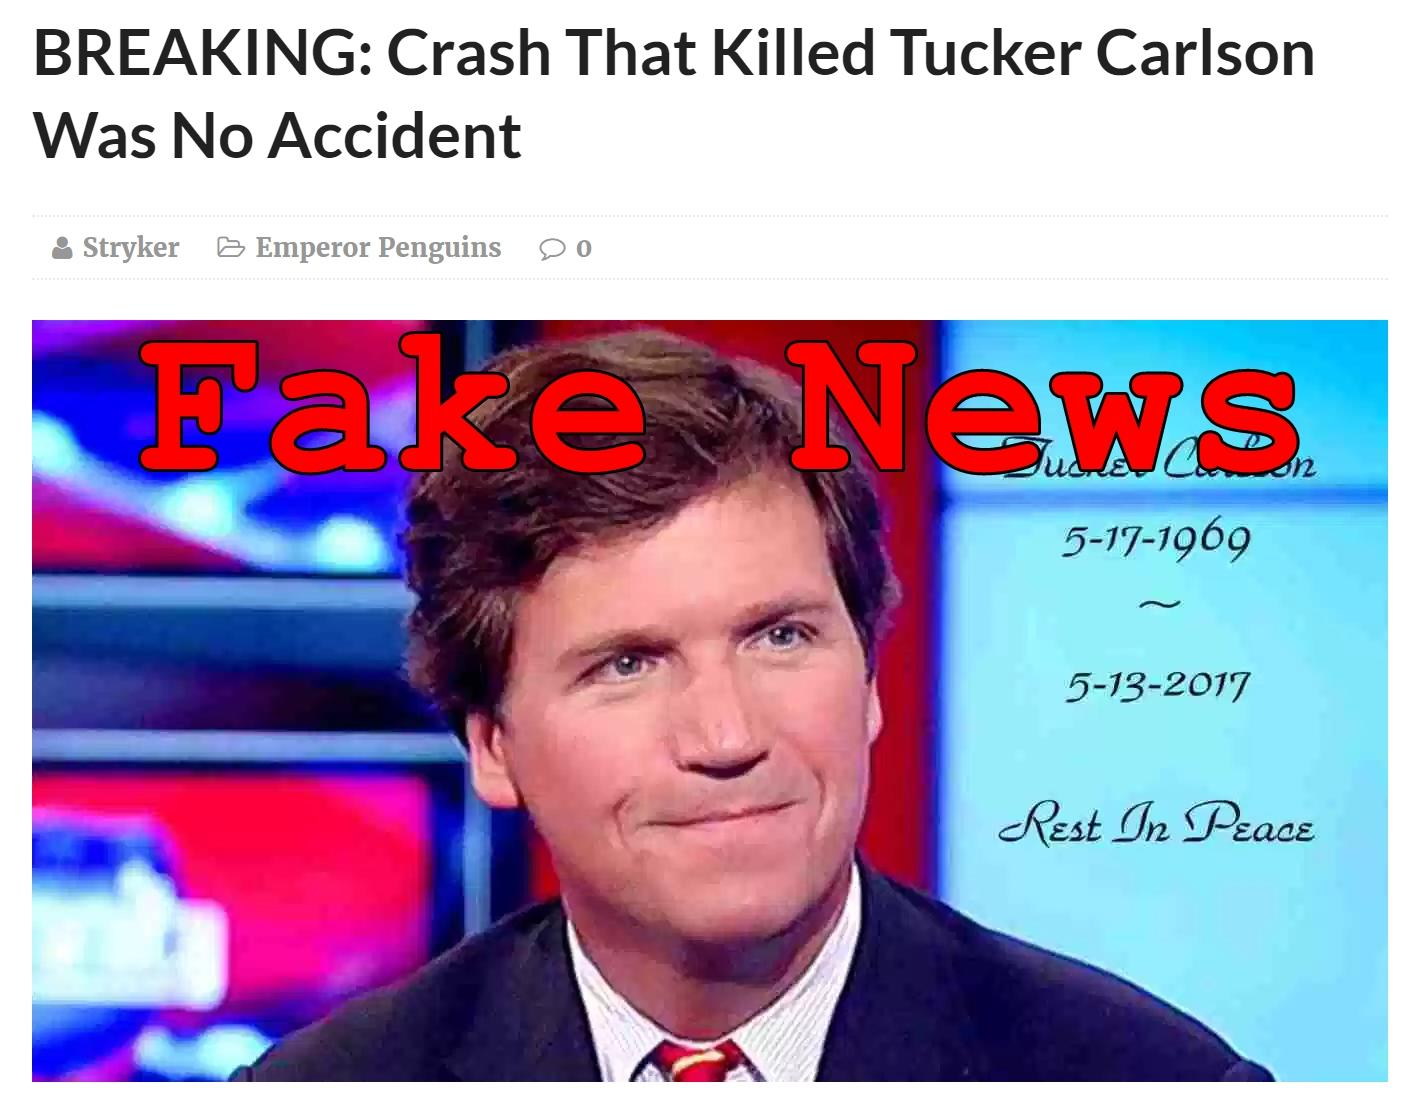 Fake News: There Was NO Crash That Killed Tucker Carlson